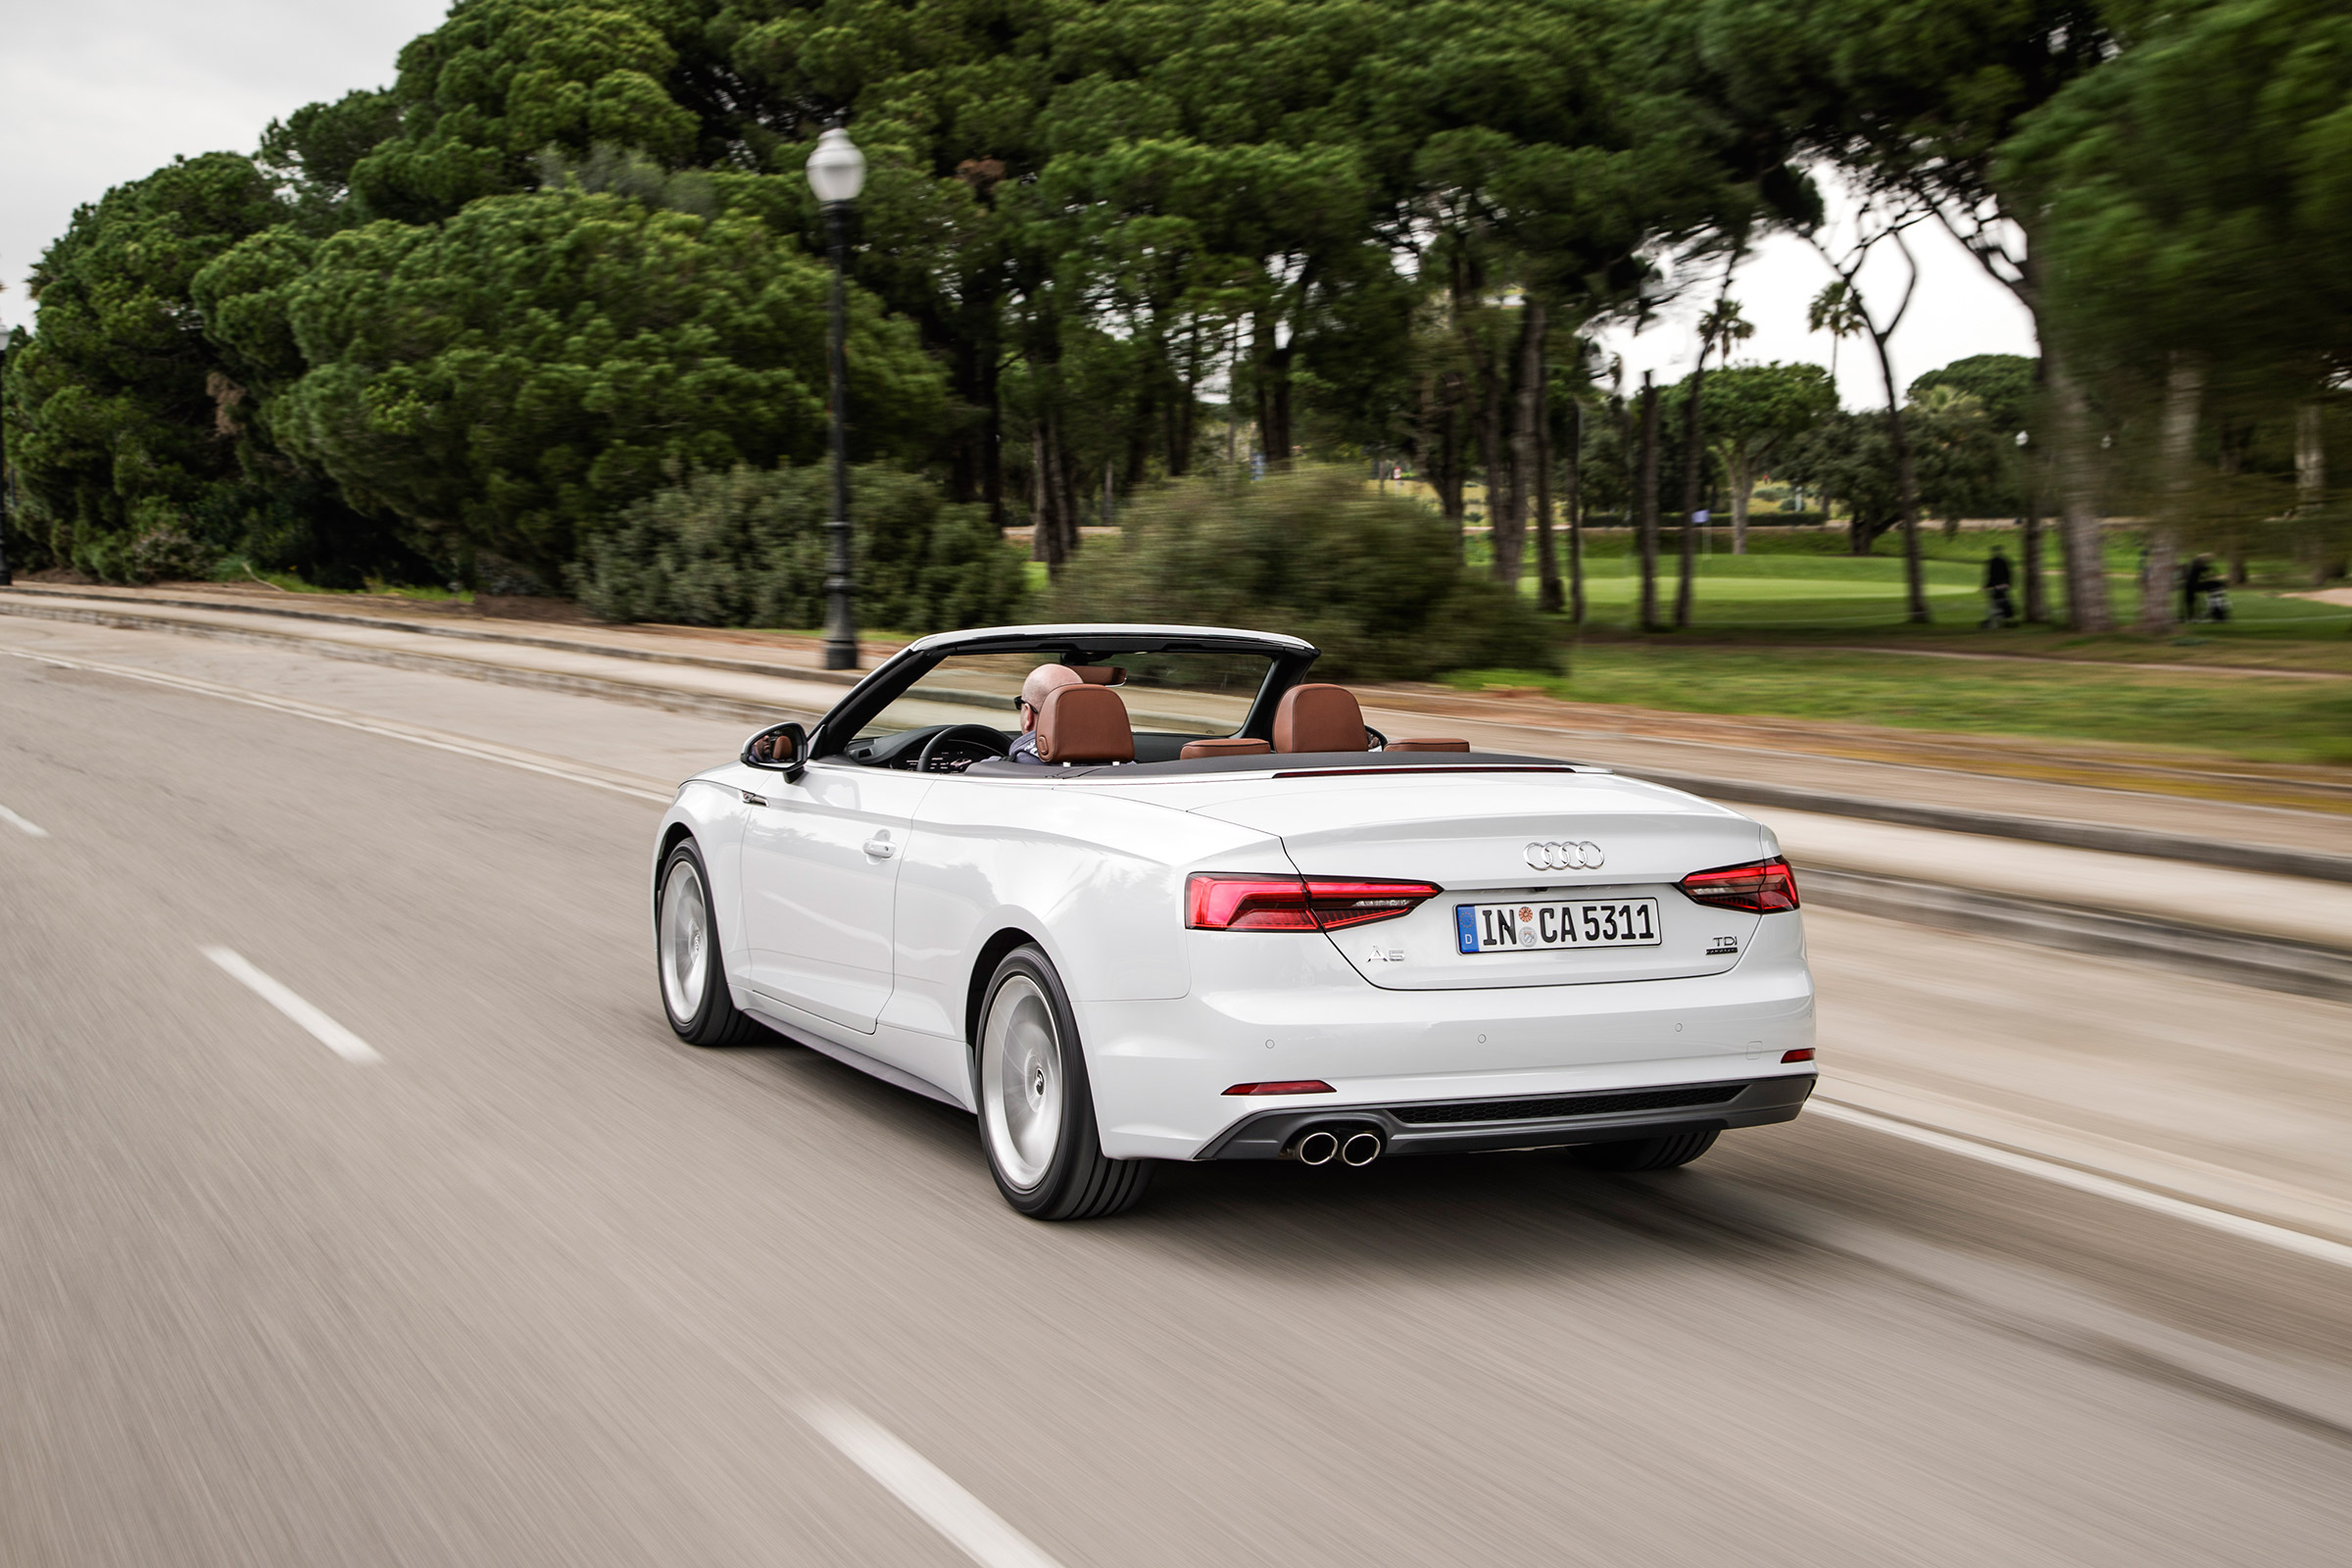 2017 Audi A5 Cabriolet Test Drive Side And Rear View (Photo 18 of 18)